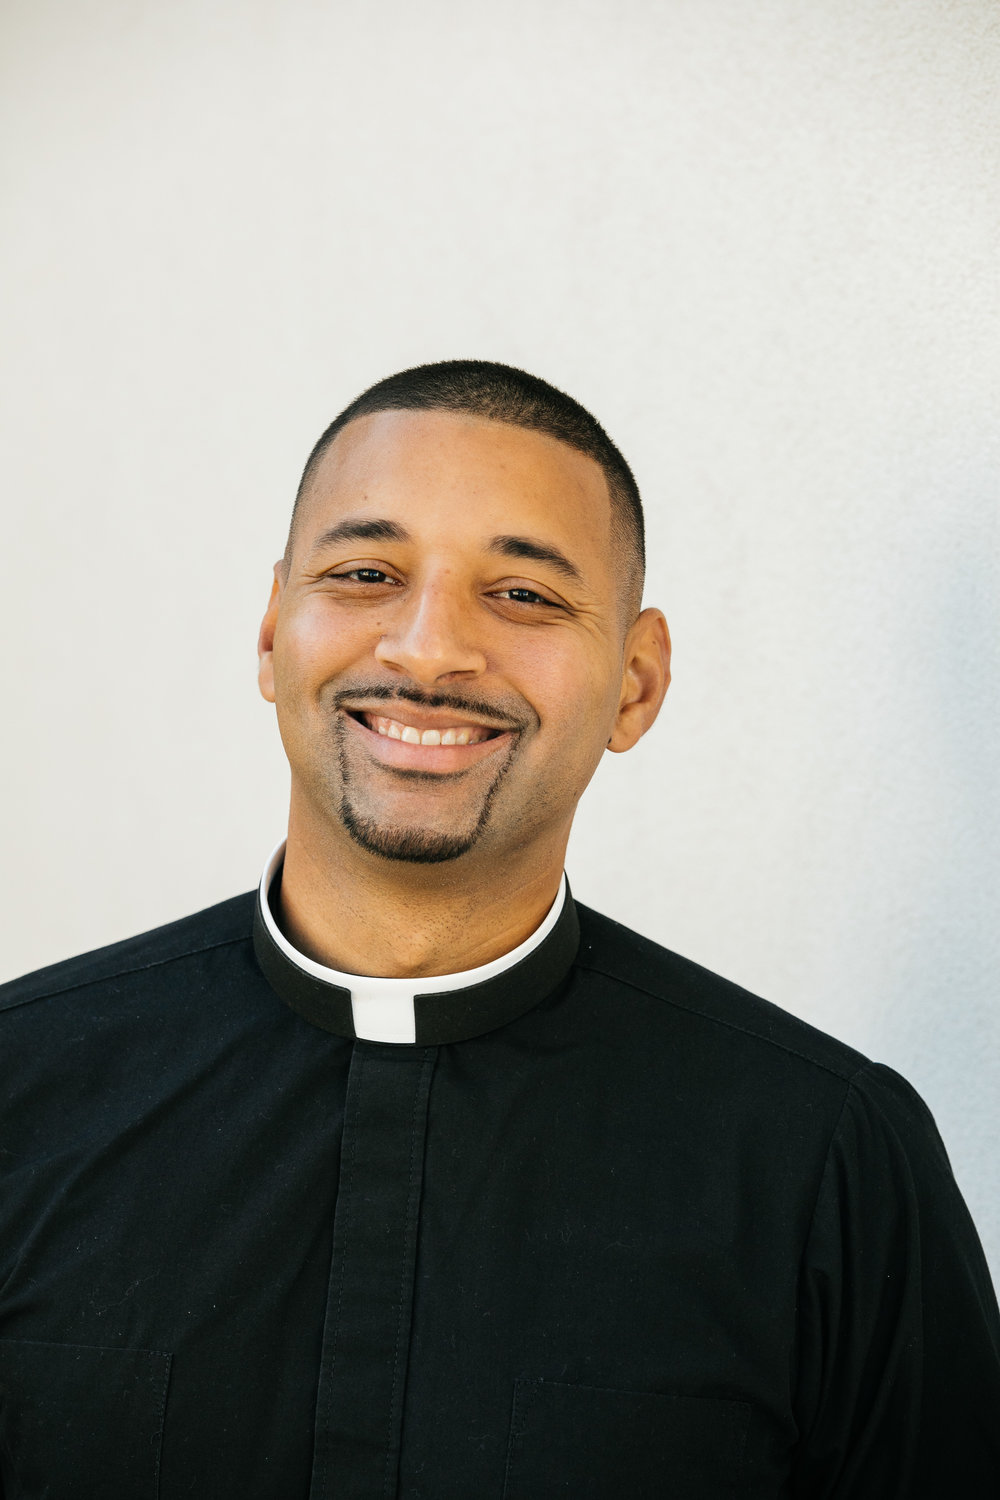 FATHER JOSH JOHNSON